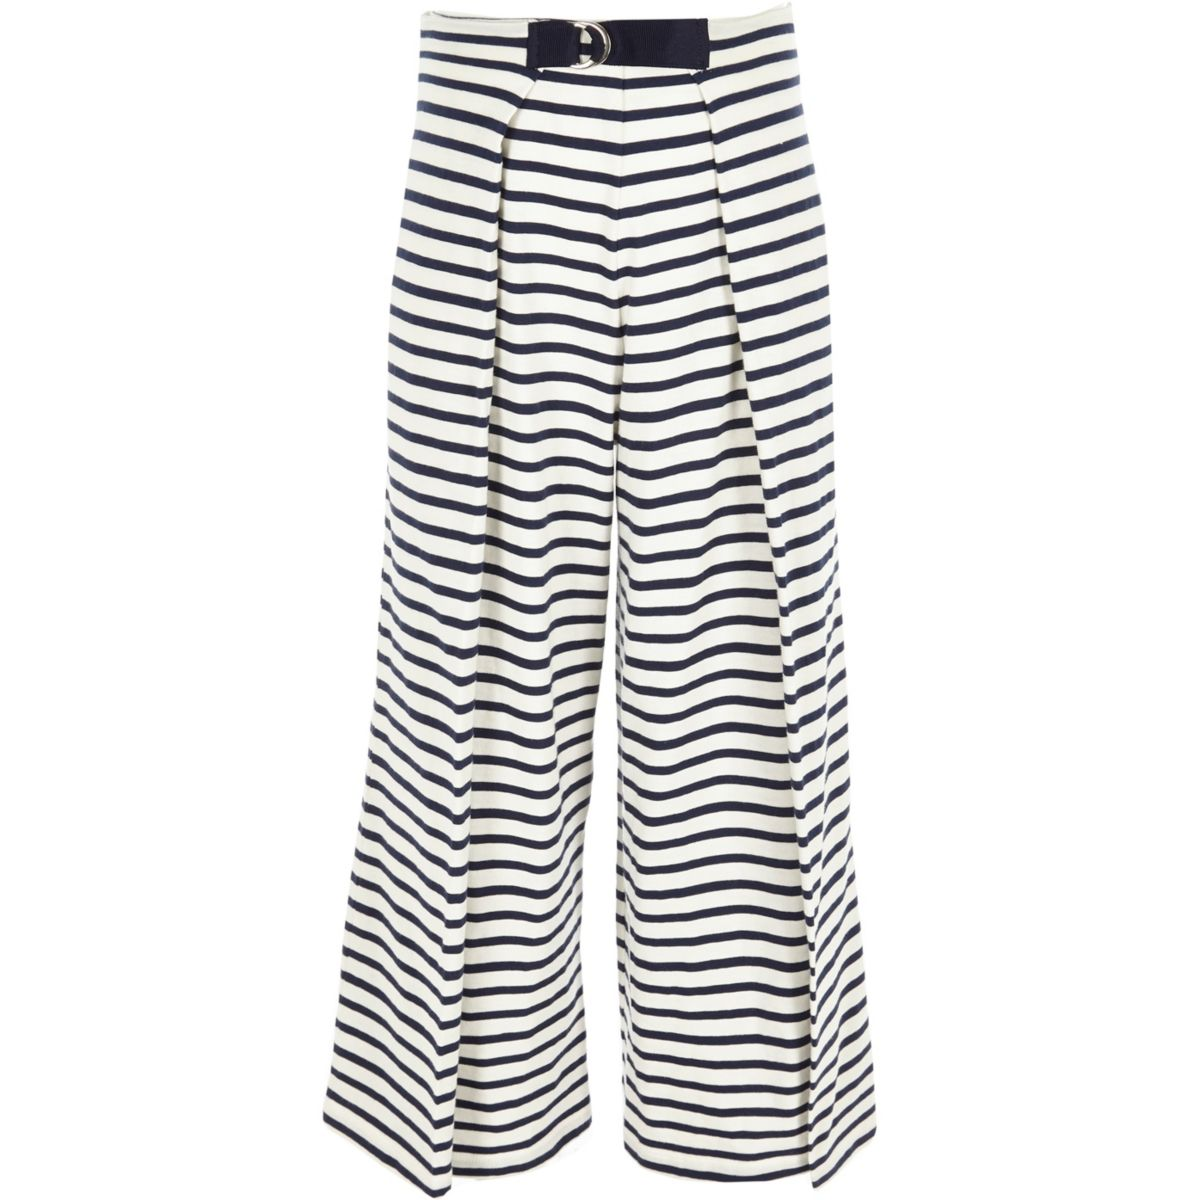 Girls white and navy stripe jersey culottes